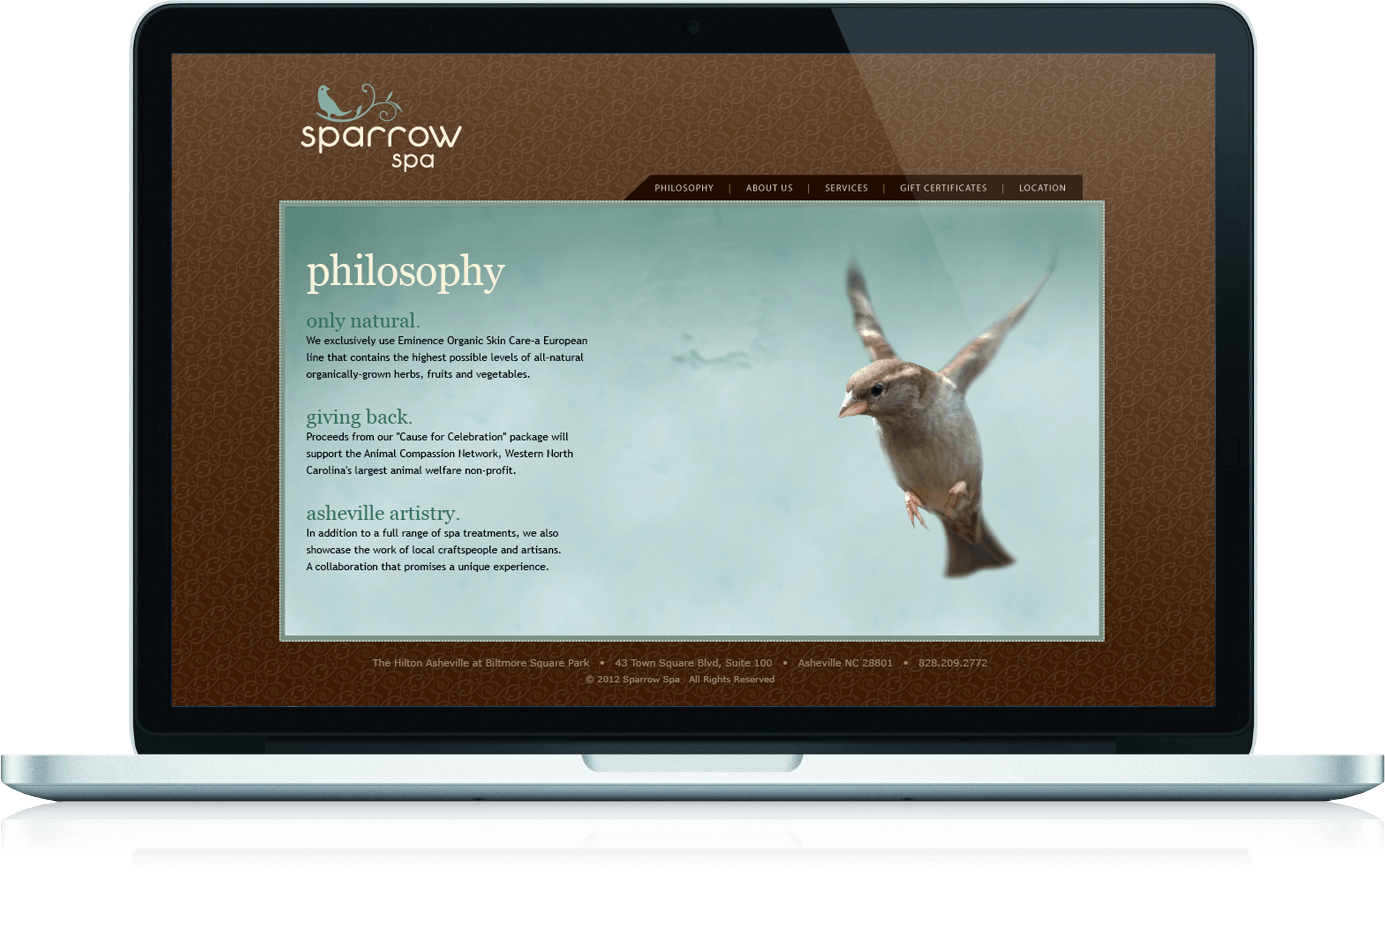 Sparrow Spa About page for website shows a sparrow in flight against a blue background.